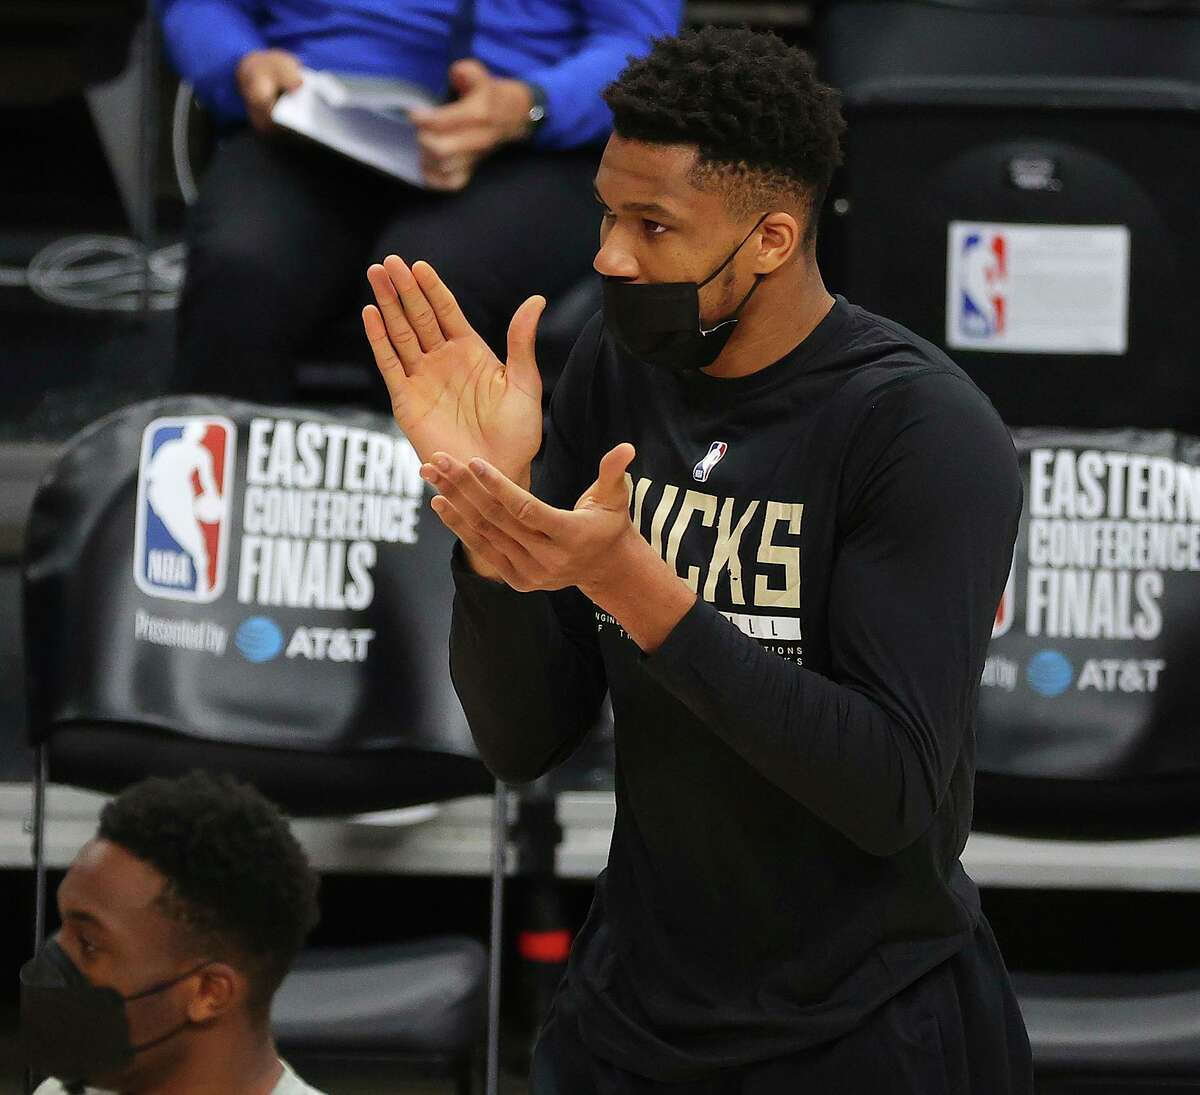 Giannis Antetokounmpo's hyperextended left knee added to a laundry list of maladies hampering key players this postseason.